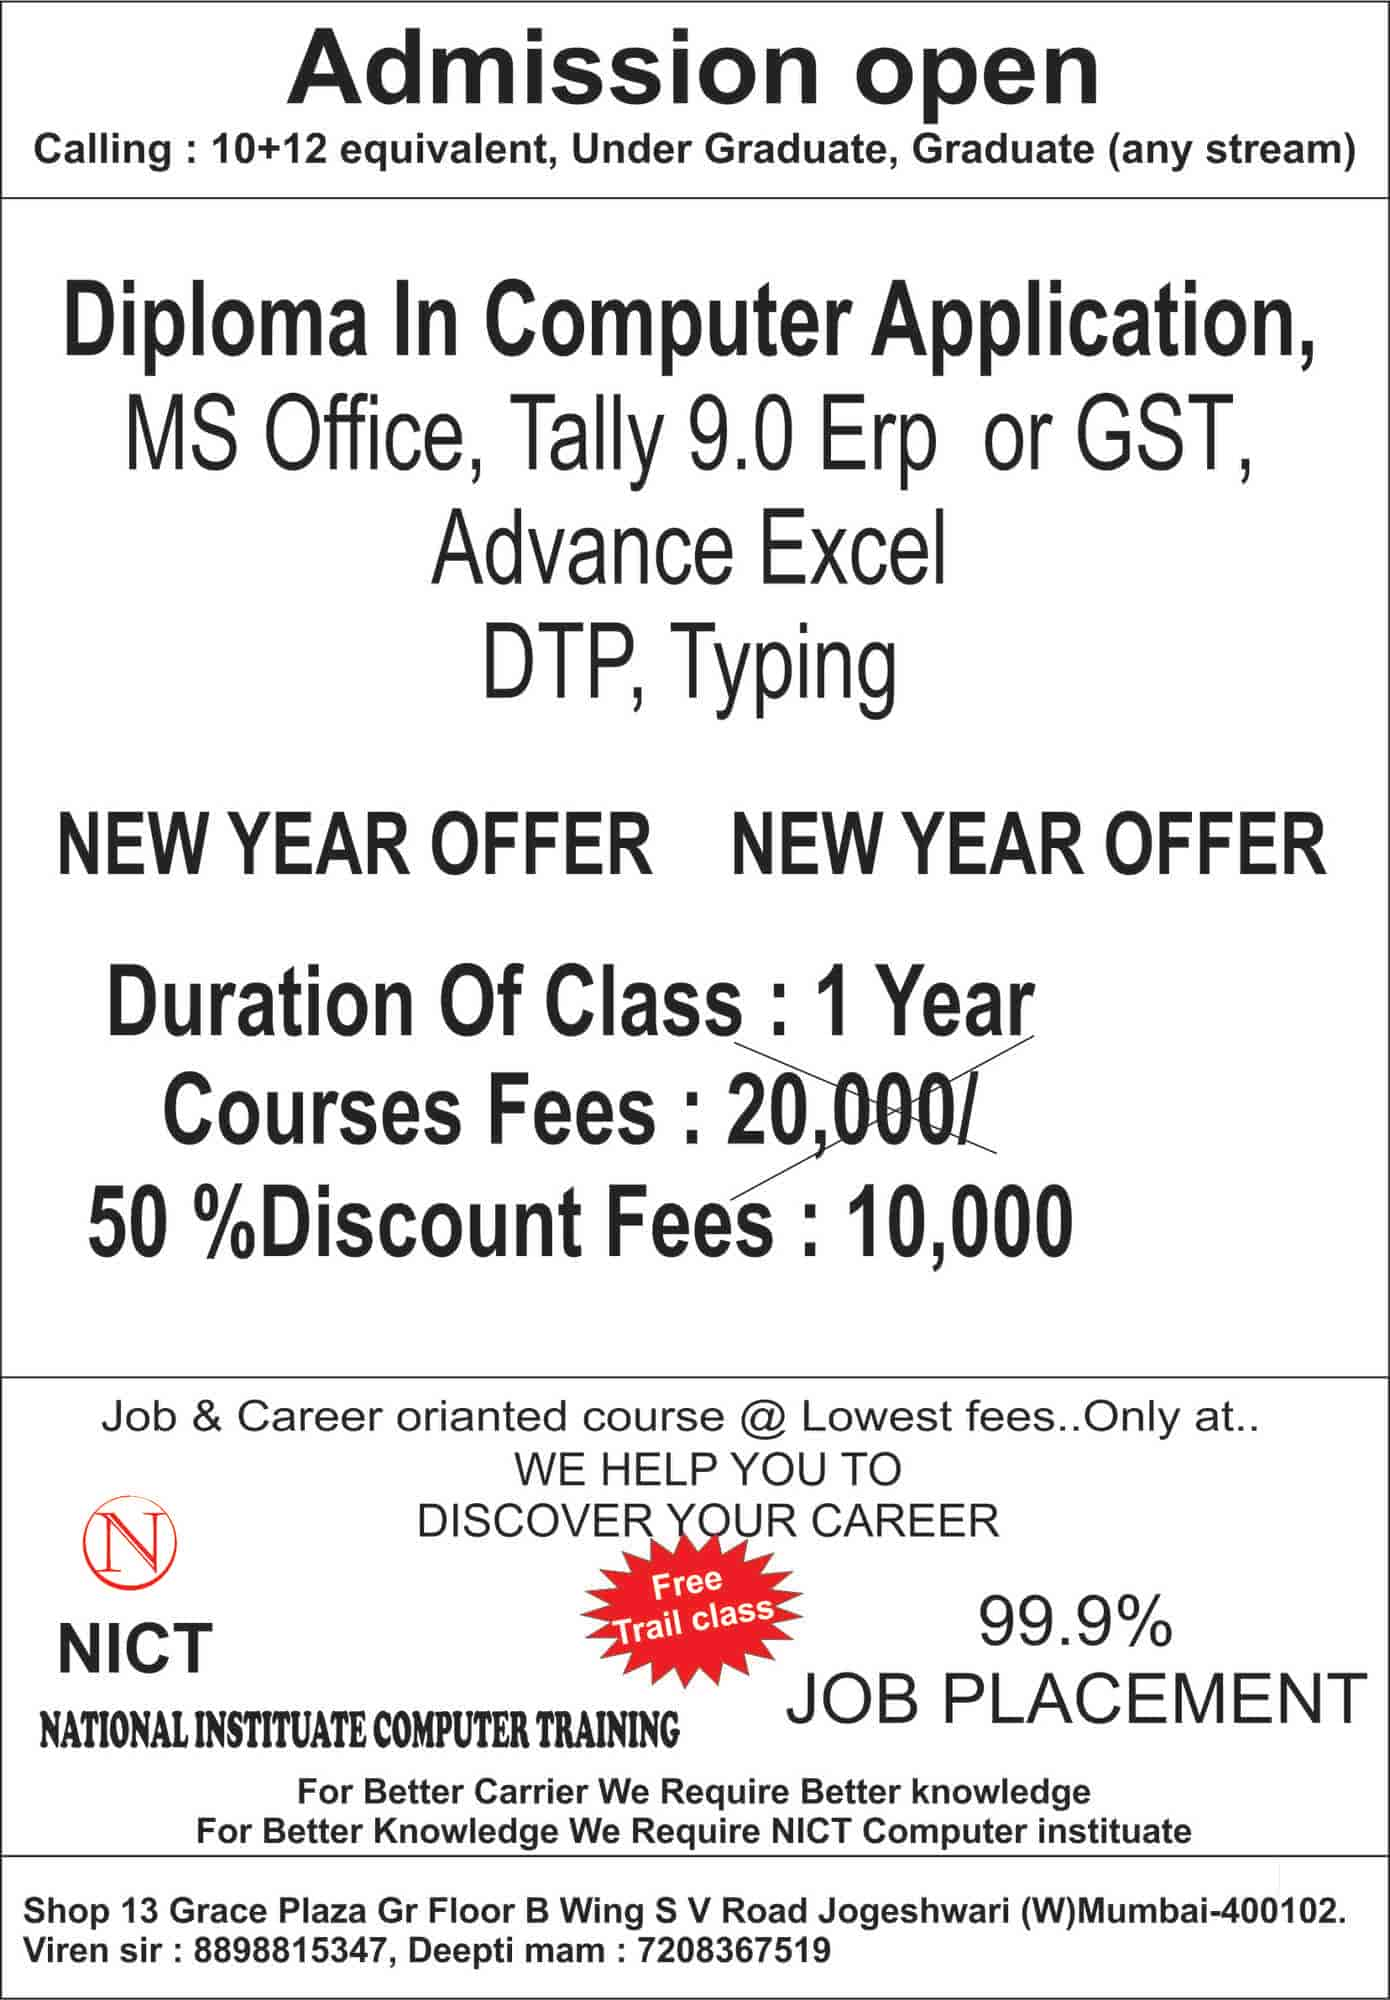 National institute computer training jogeshwari west computer national institute computer training jogeshwari west computer training institutes in mumbai justdial xflitez Choice Image